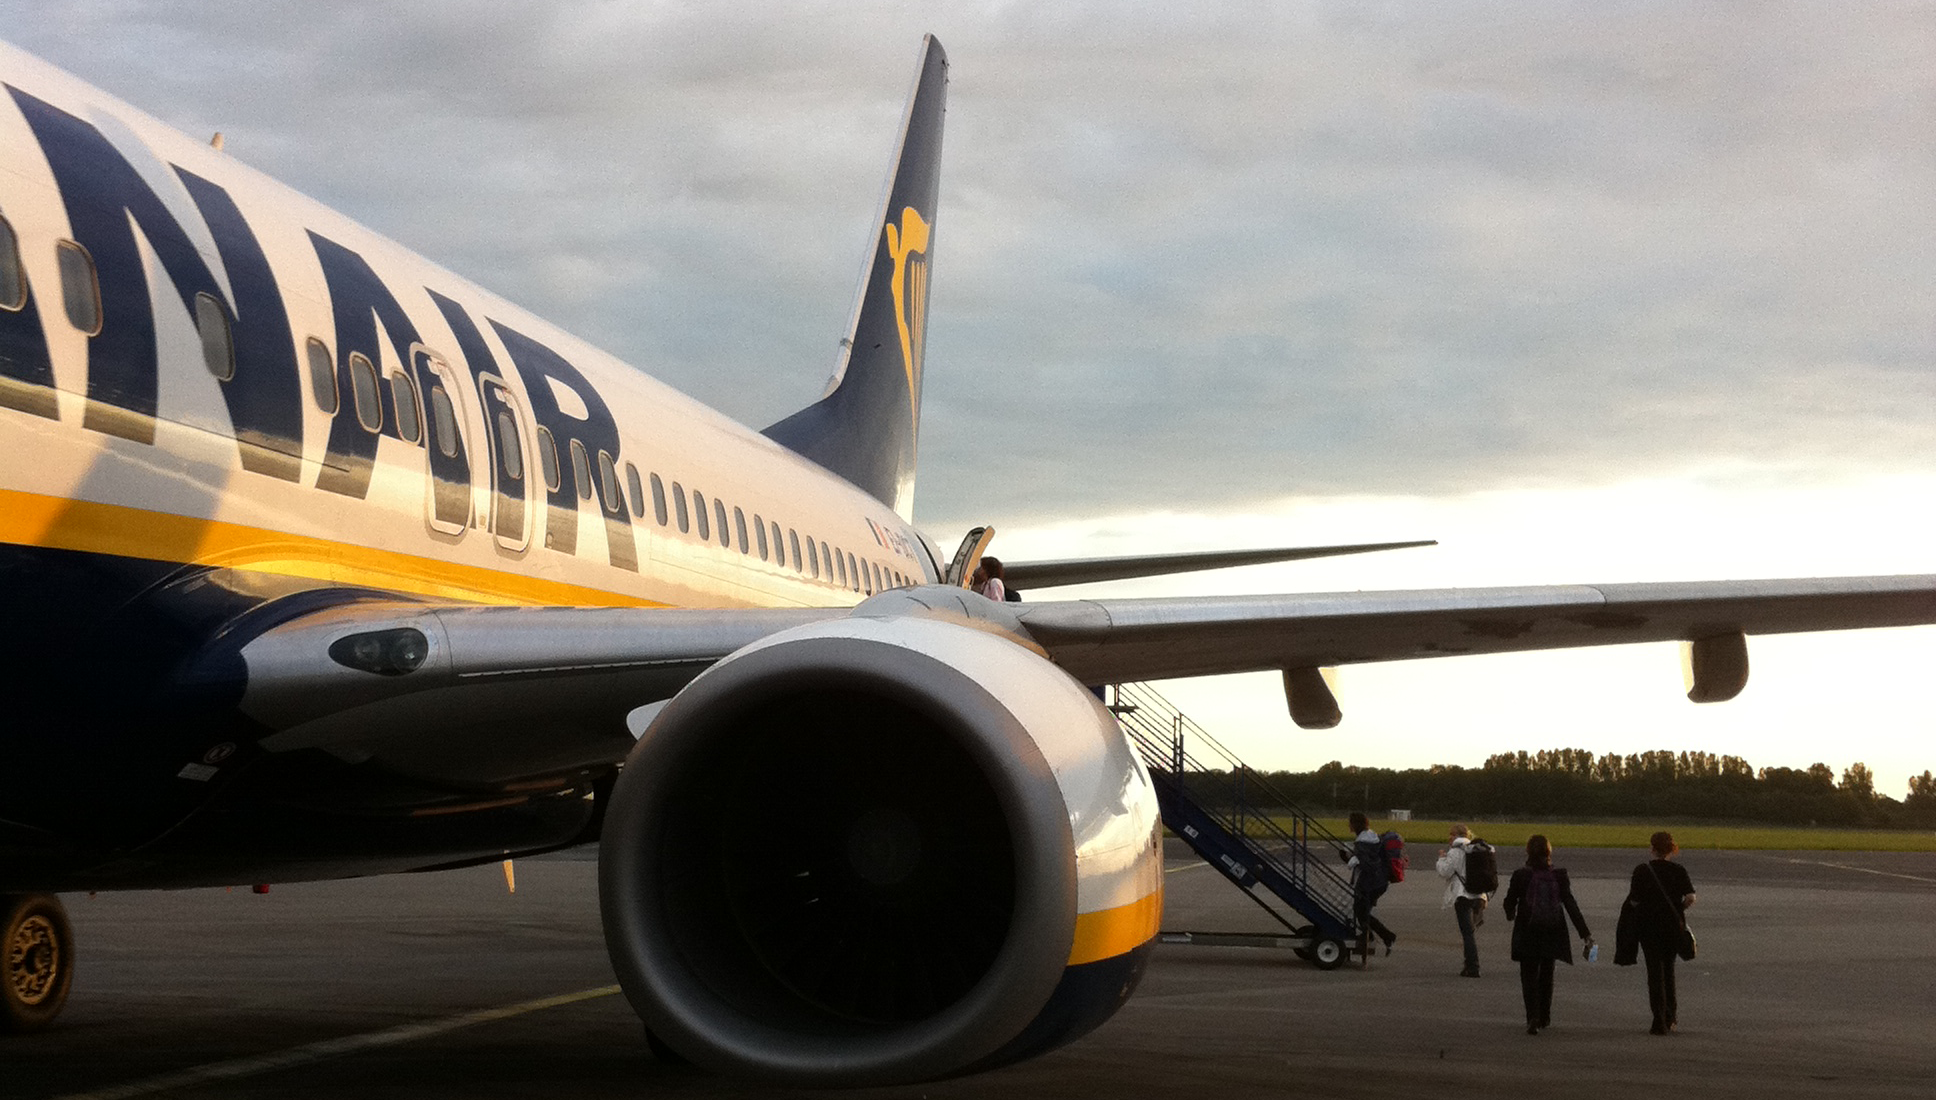 Ryanair began selling package holidays this week as they aim to expand their profile further. Image credit:    Sean MacEntee   /   Flickr